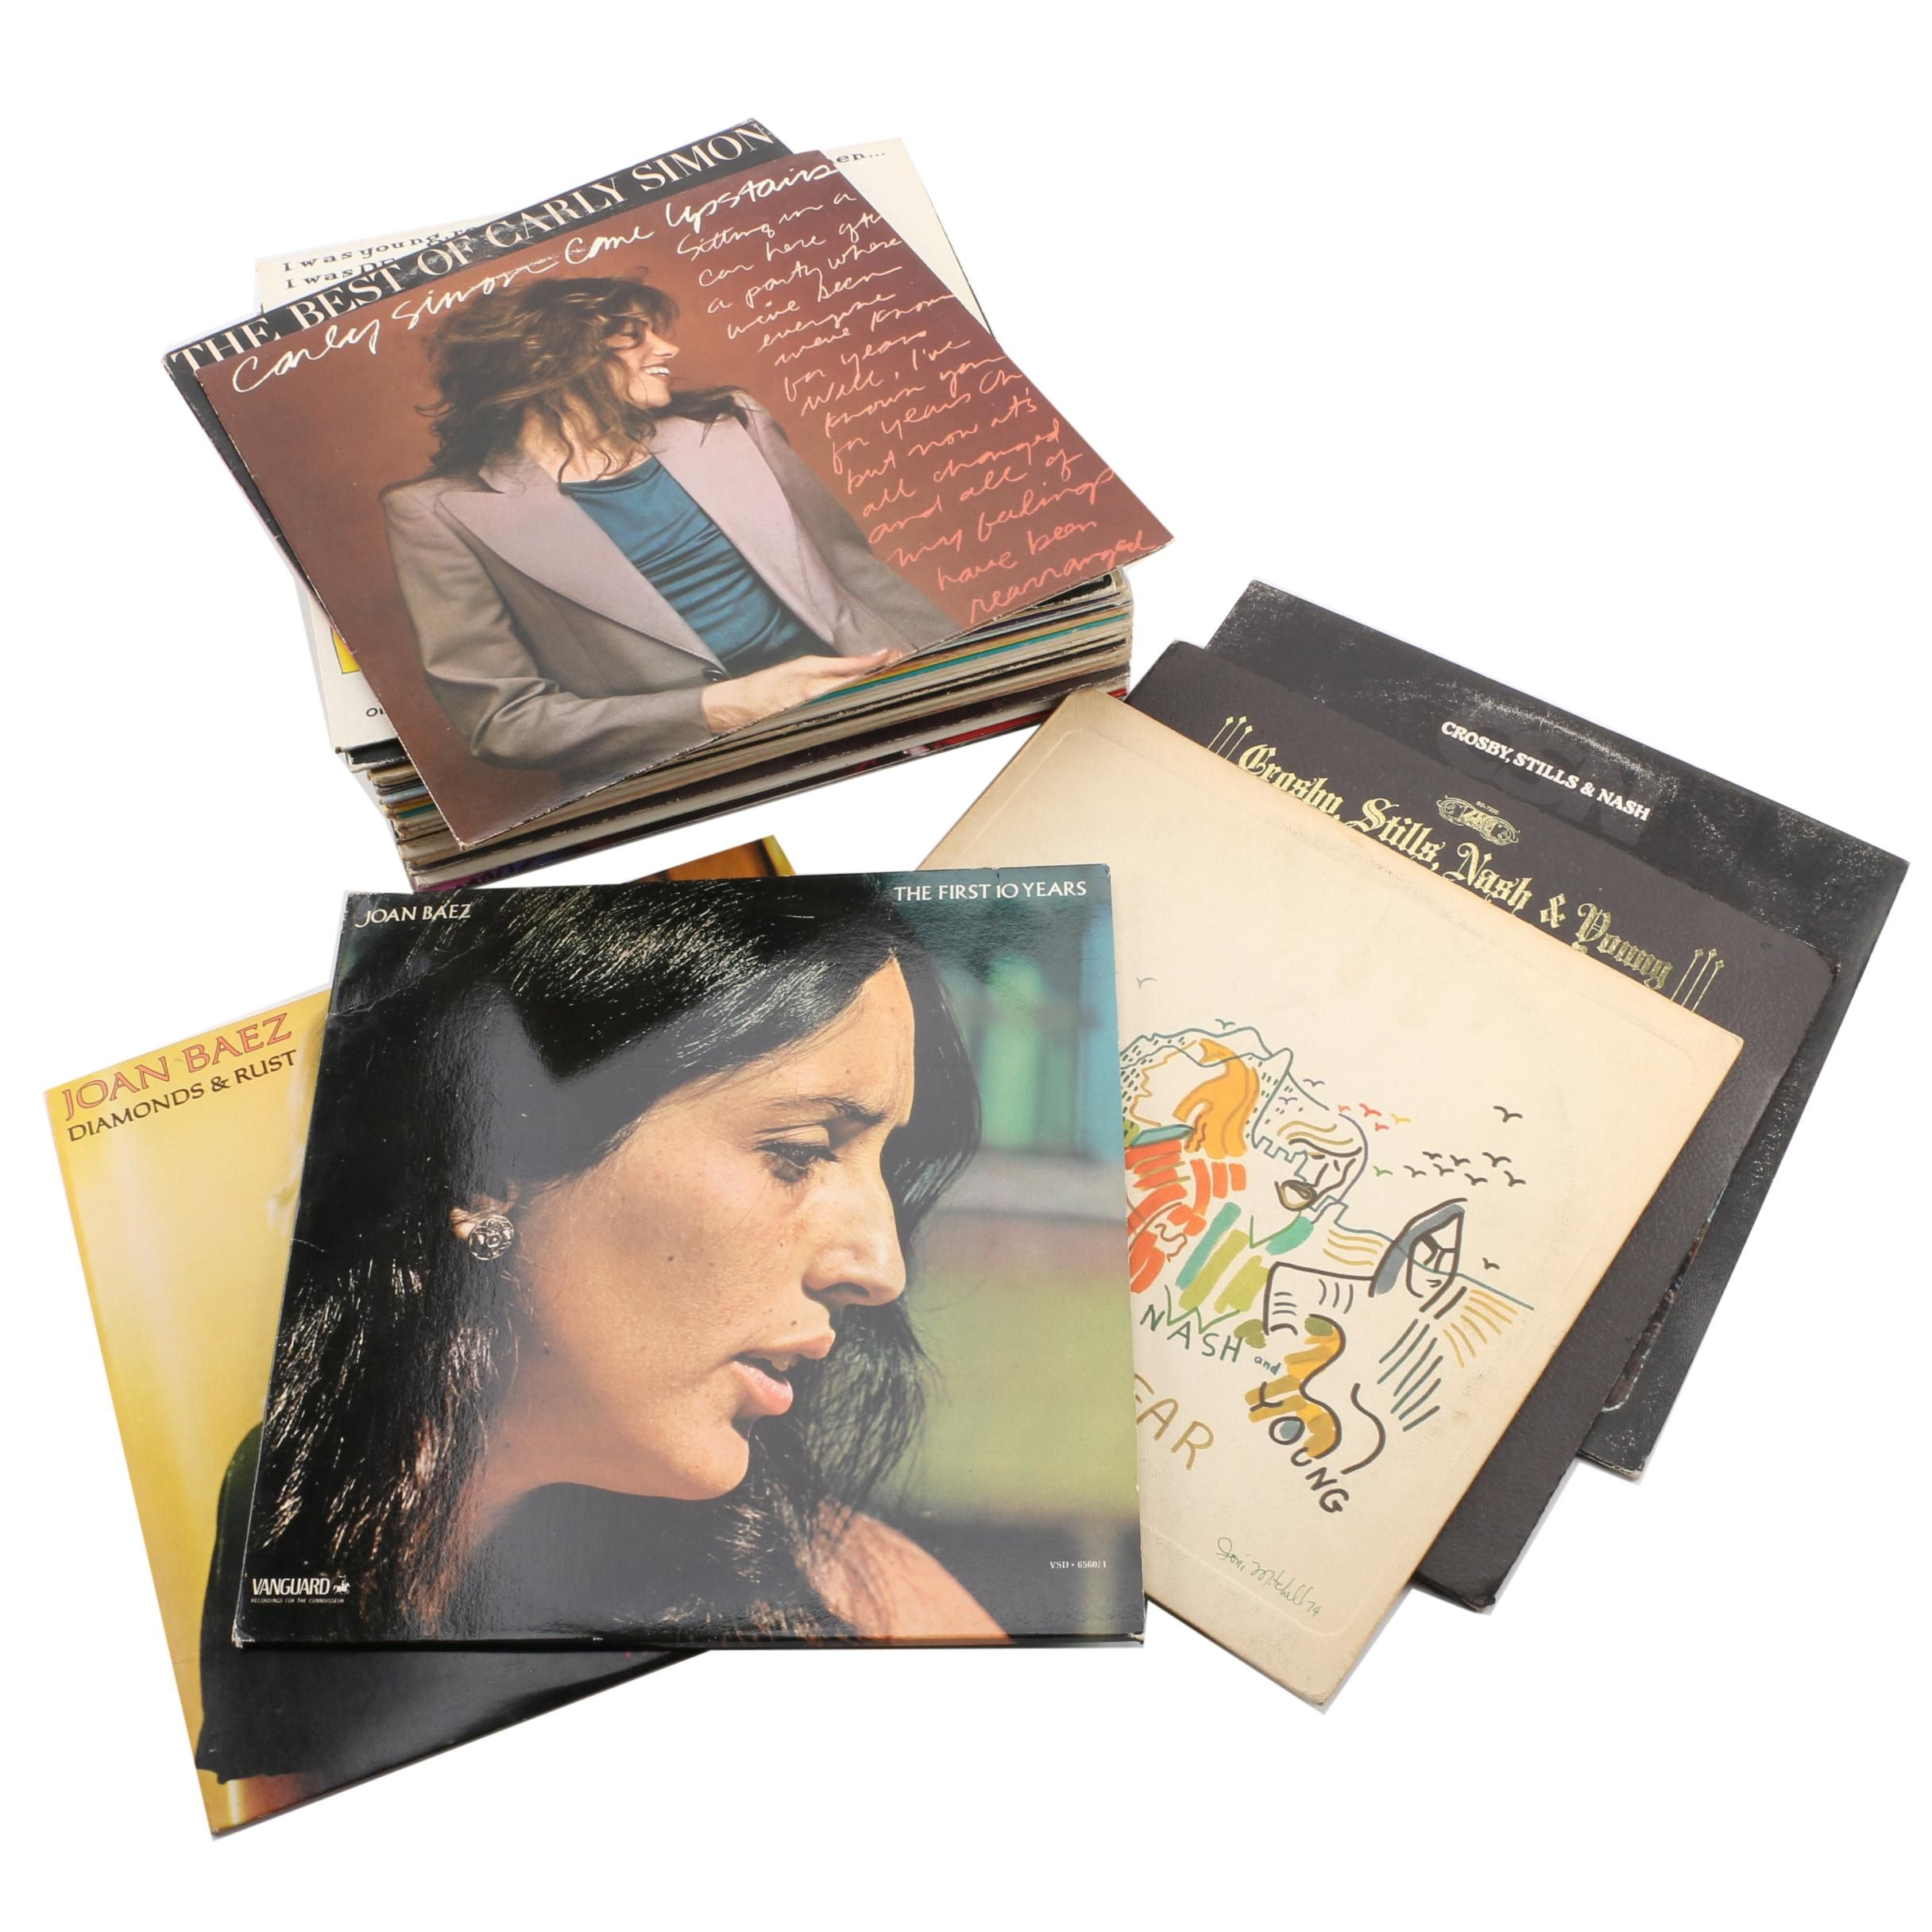 Vintage Folk Records Featuring Joan Baez and Crosby, Stills, Nash, and Young